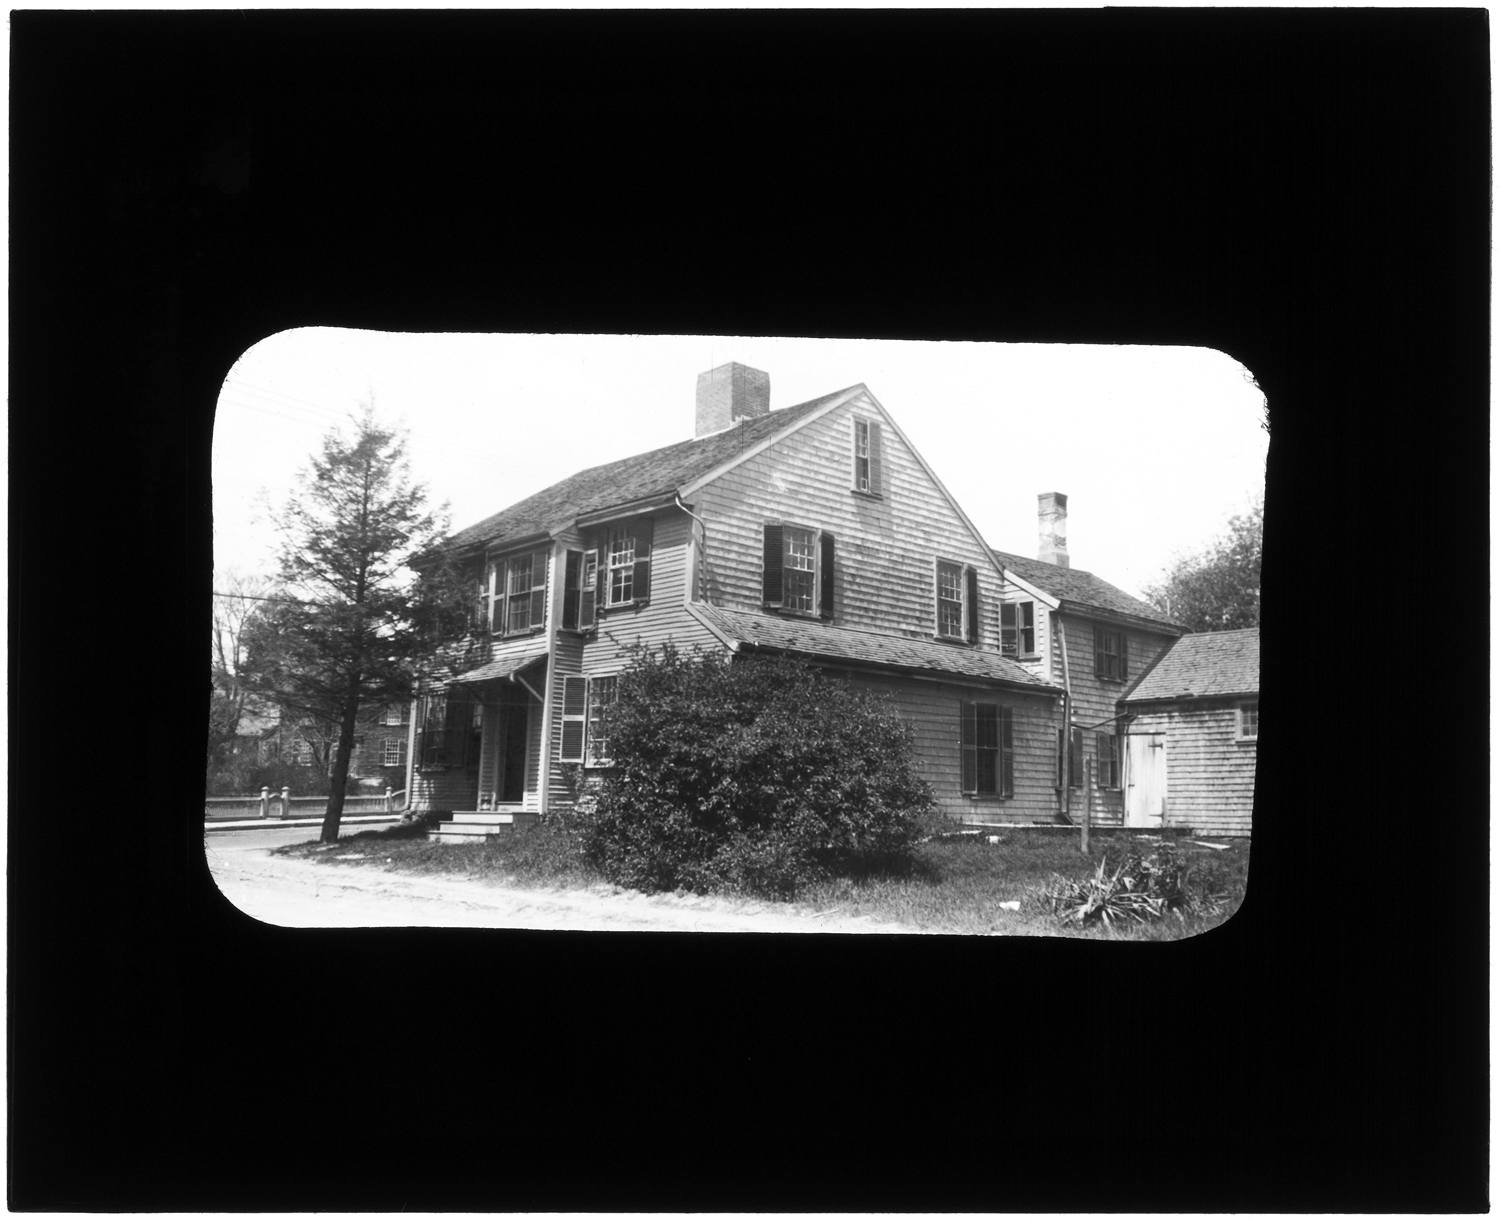 135. John Brewster house, Main and Linden Streets, 1922